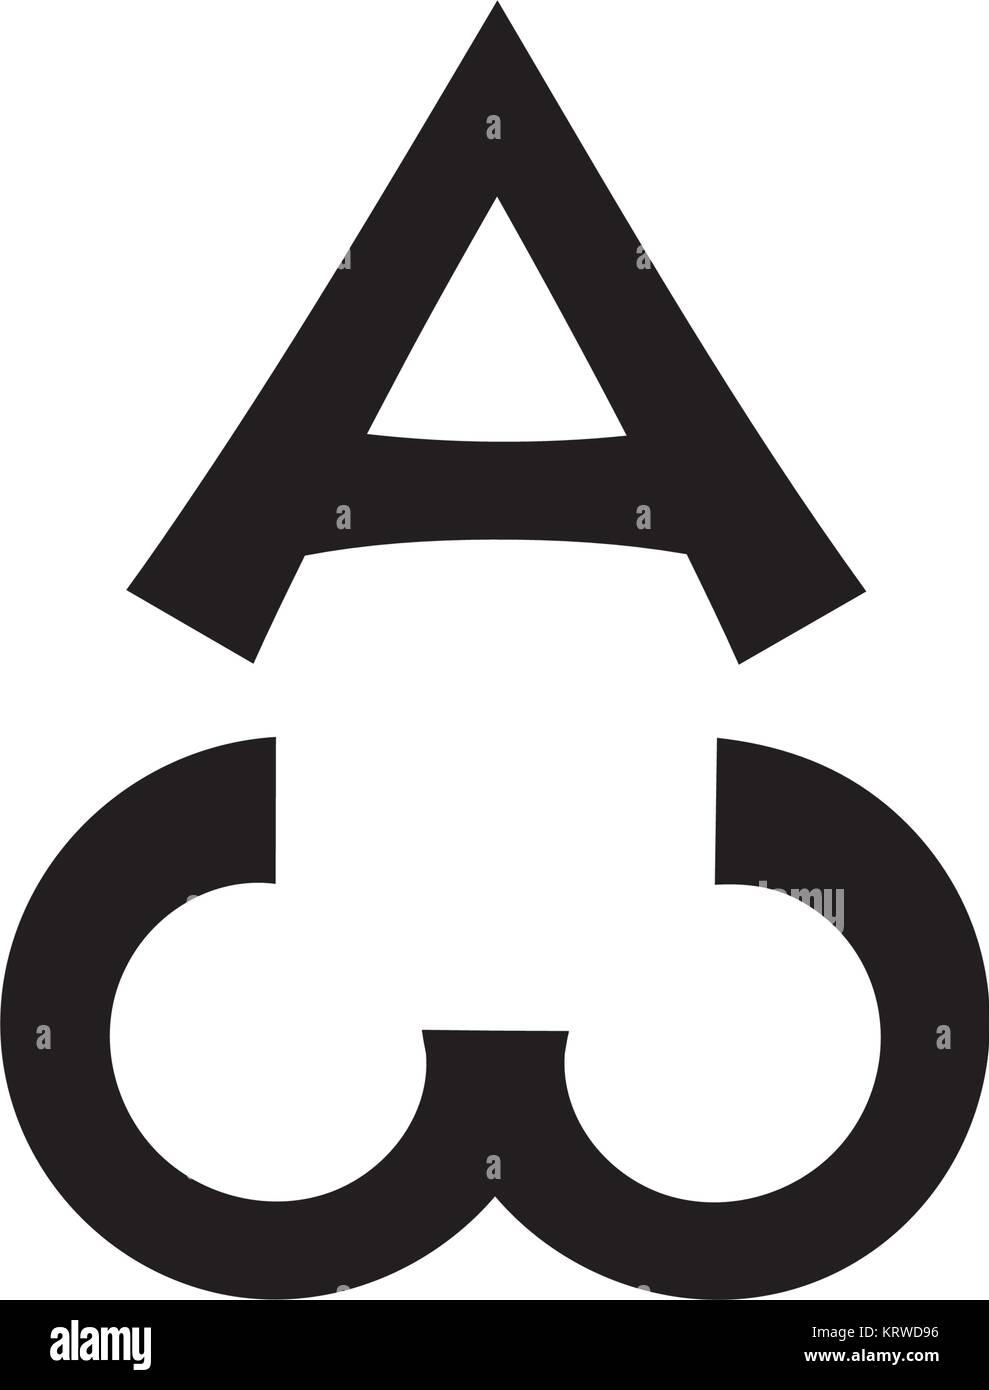 Alpha and omega symbol stock photos alpha and omega symbol stock ancient christian sacral monogram of the biblical sentence i am alpha and omega biocorpaavc Gallery